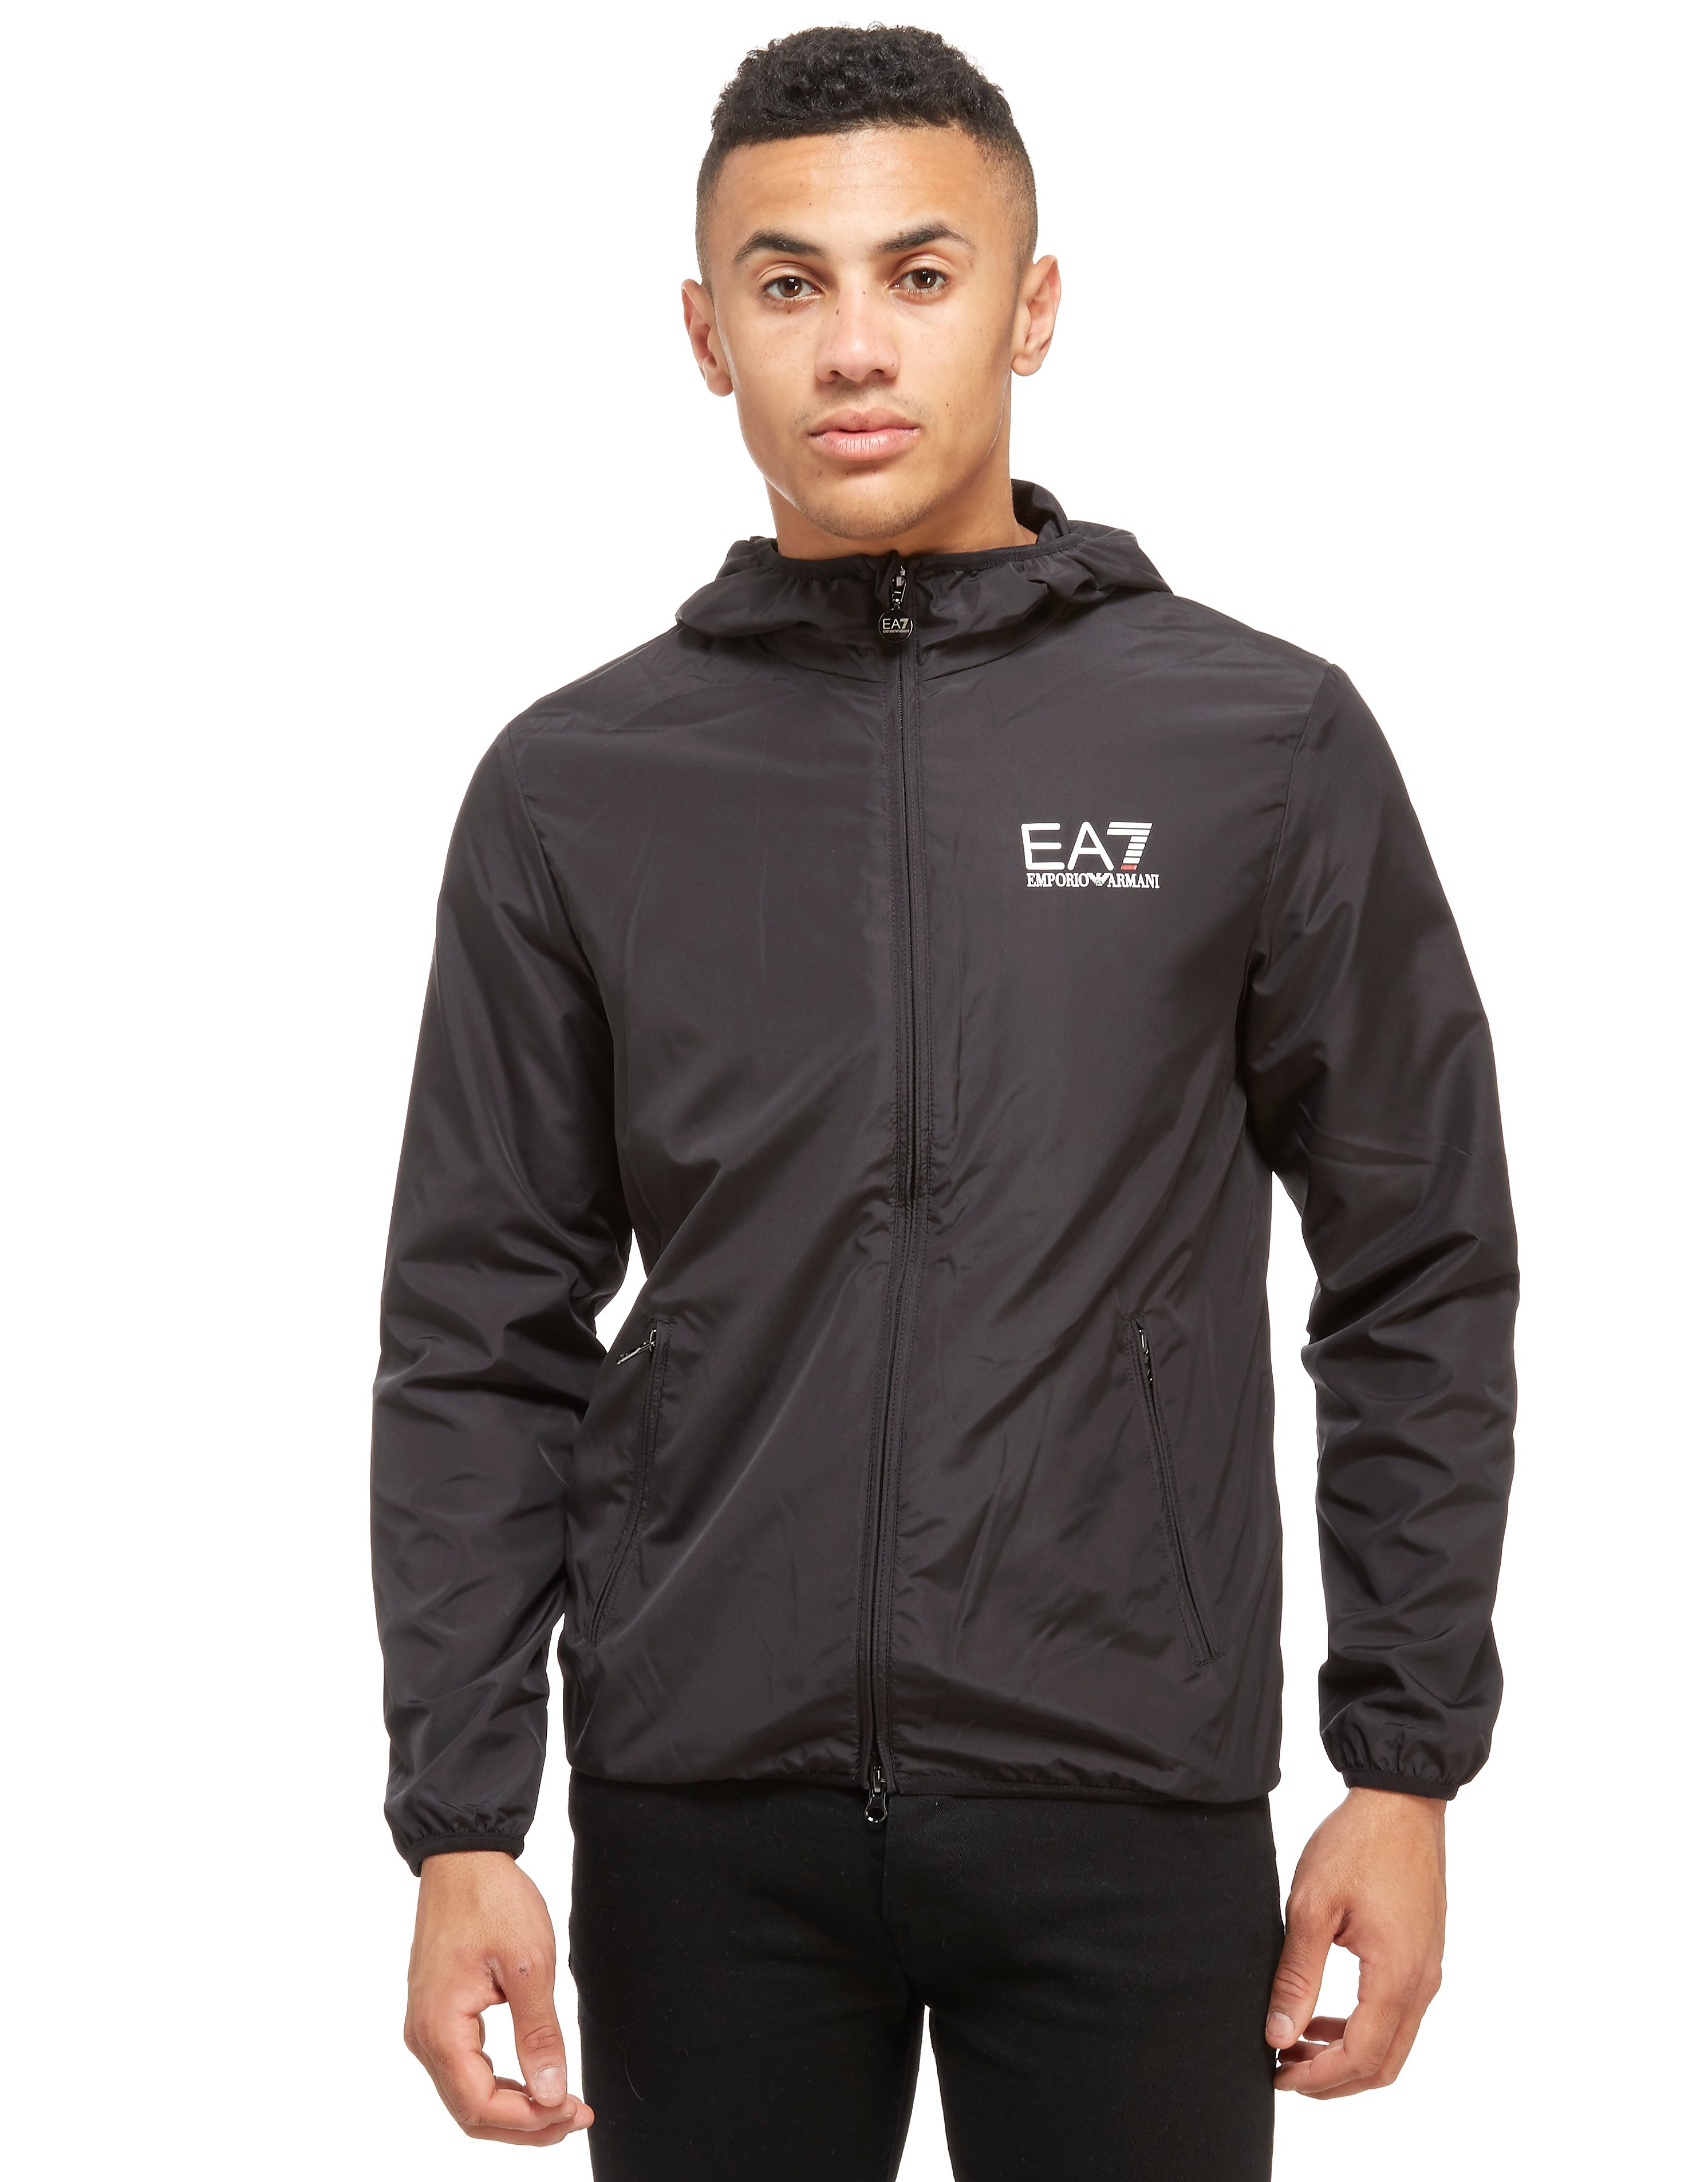 Emporio Armani EA7 Core Lightweight Hooded Jacket